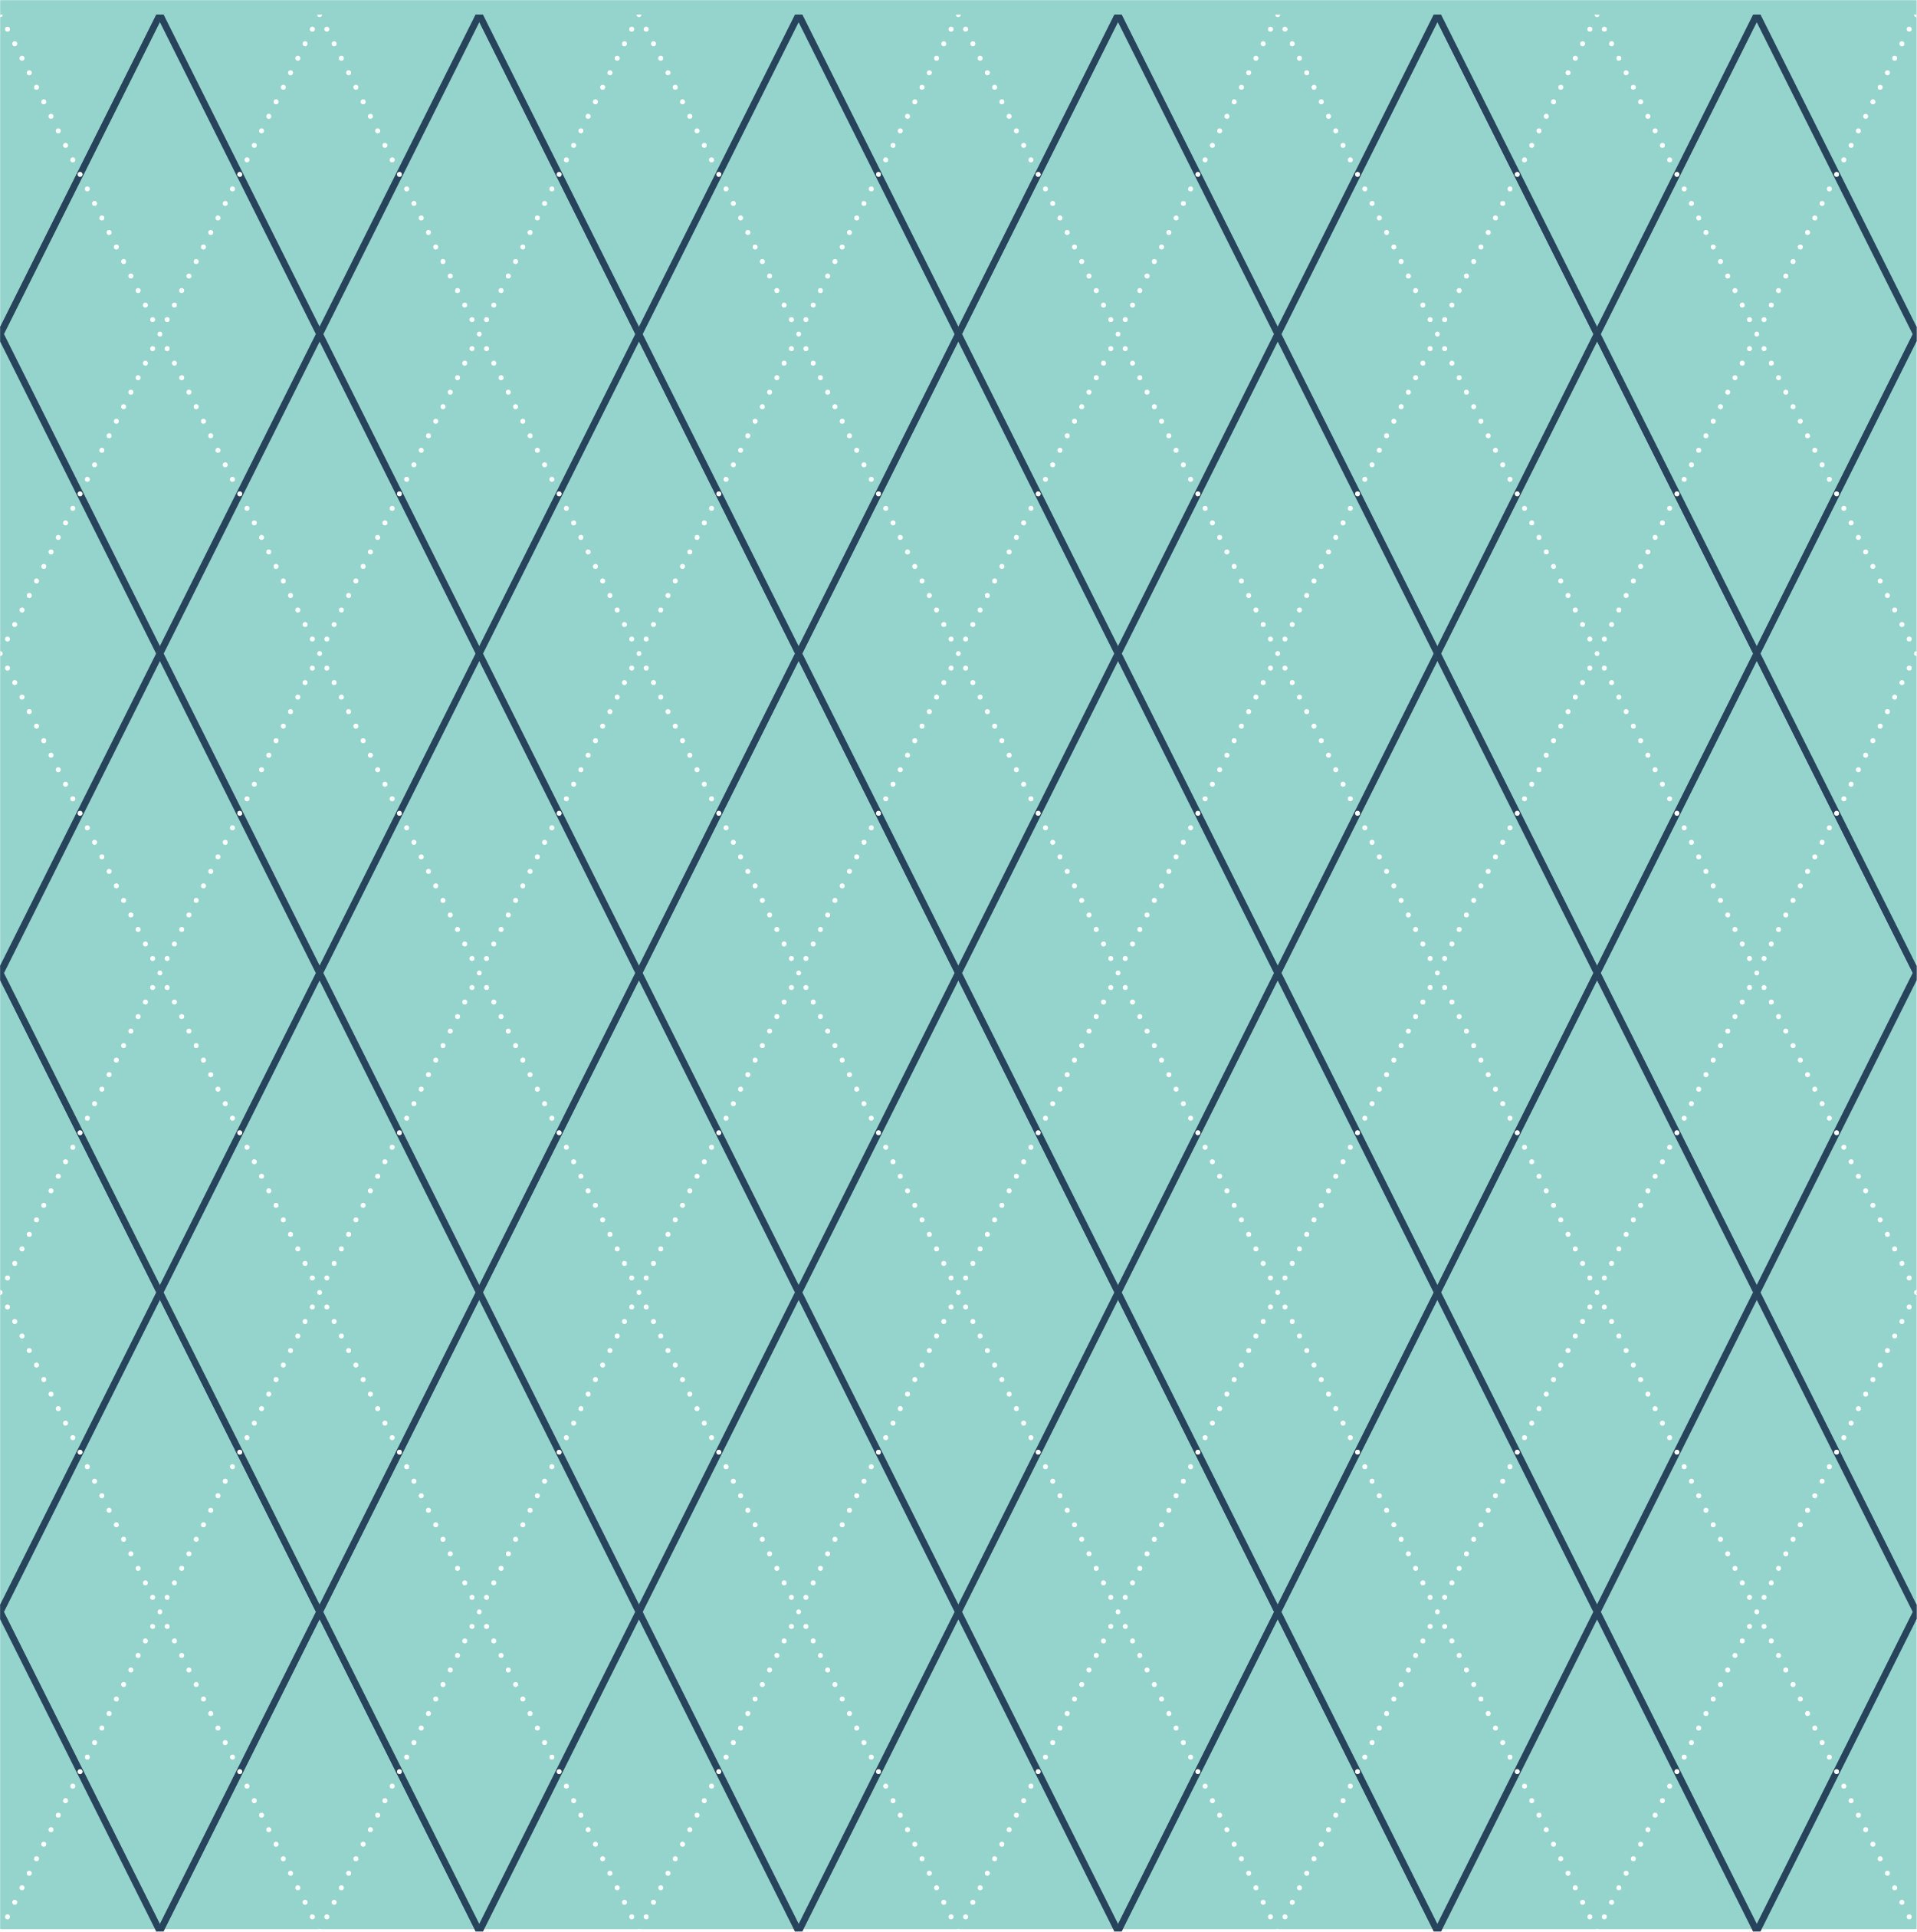 169/10-pattern/Pattern-quadrillage-background.png